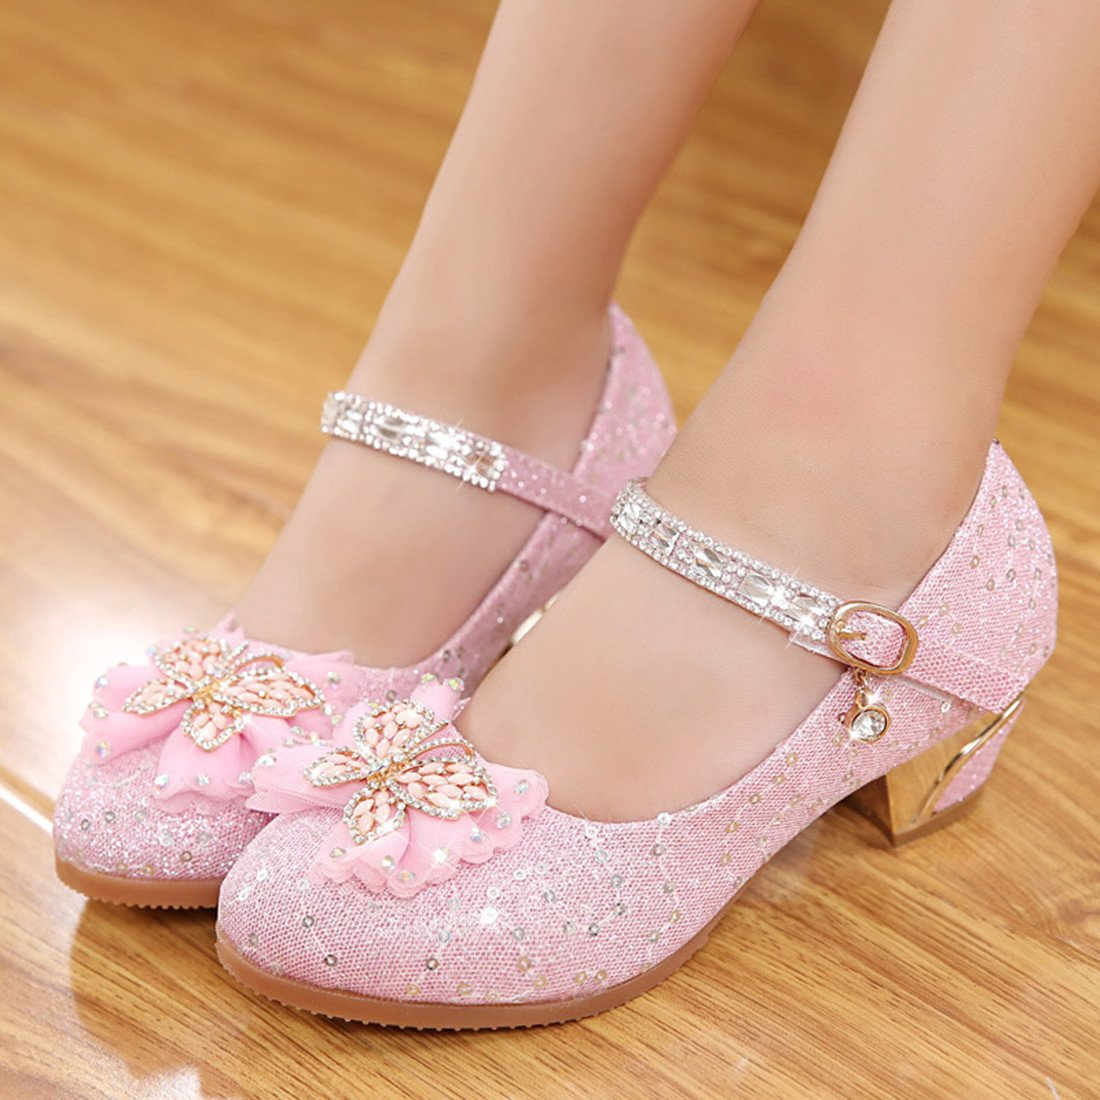 Toddler Littlle Big Kids Girls Glitter Wedding Shoes Dancing Party Mary Jane Flat Shoes Pink Size 2 by YANGXING (Image #5)